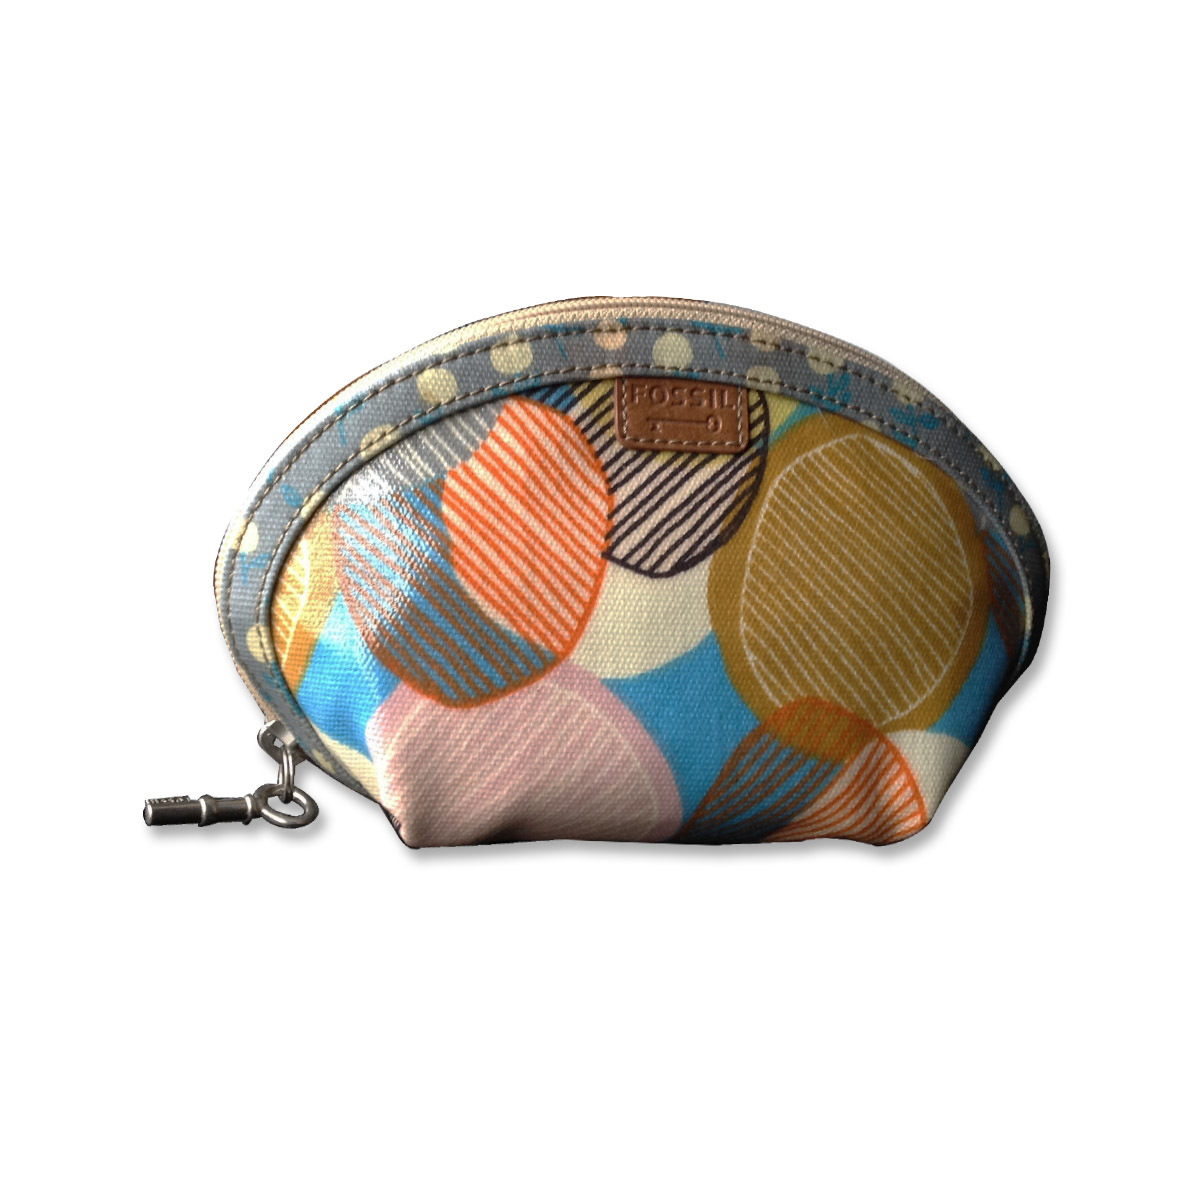 Fossil Key Per Small Domed Cosmetic Bag